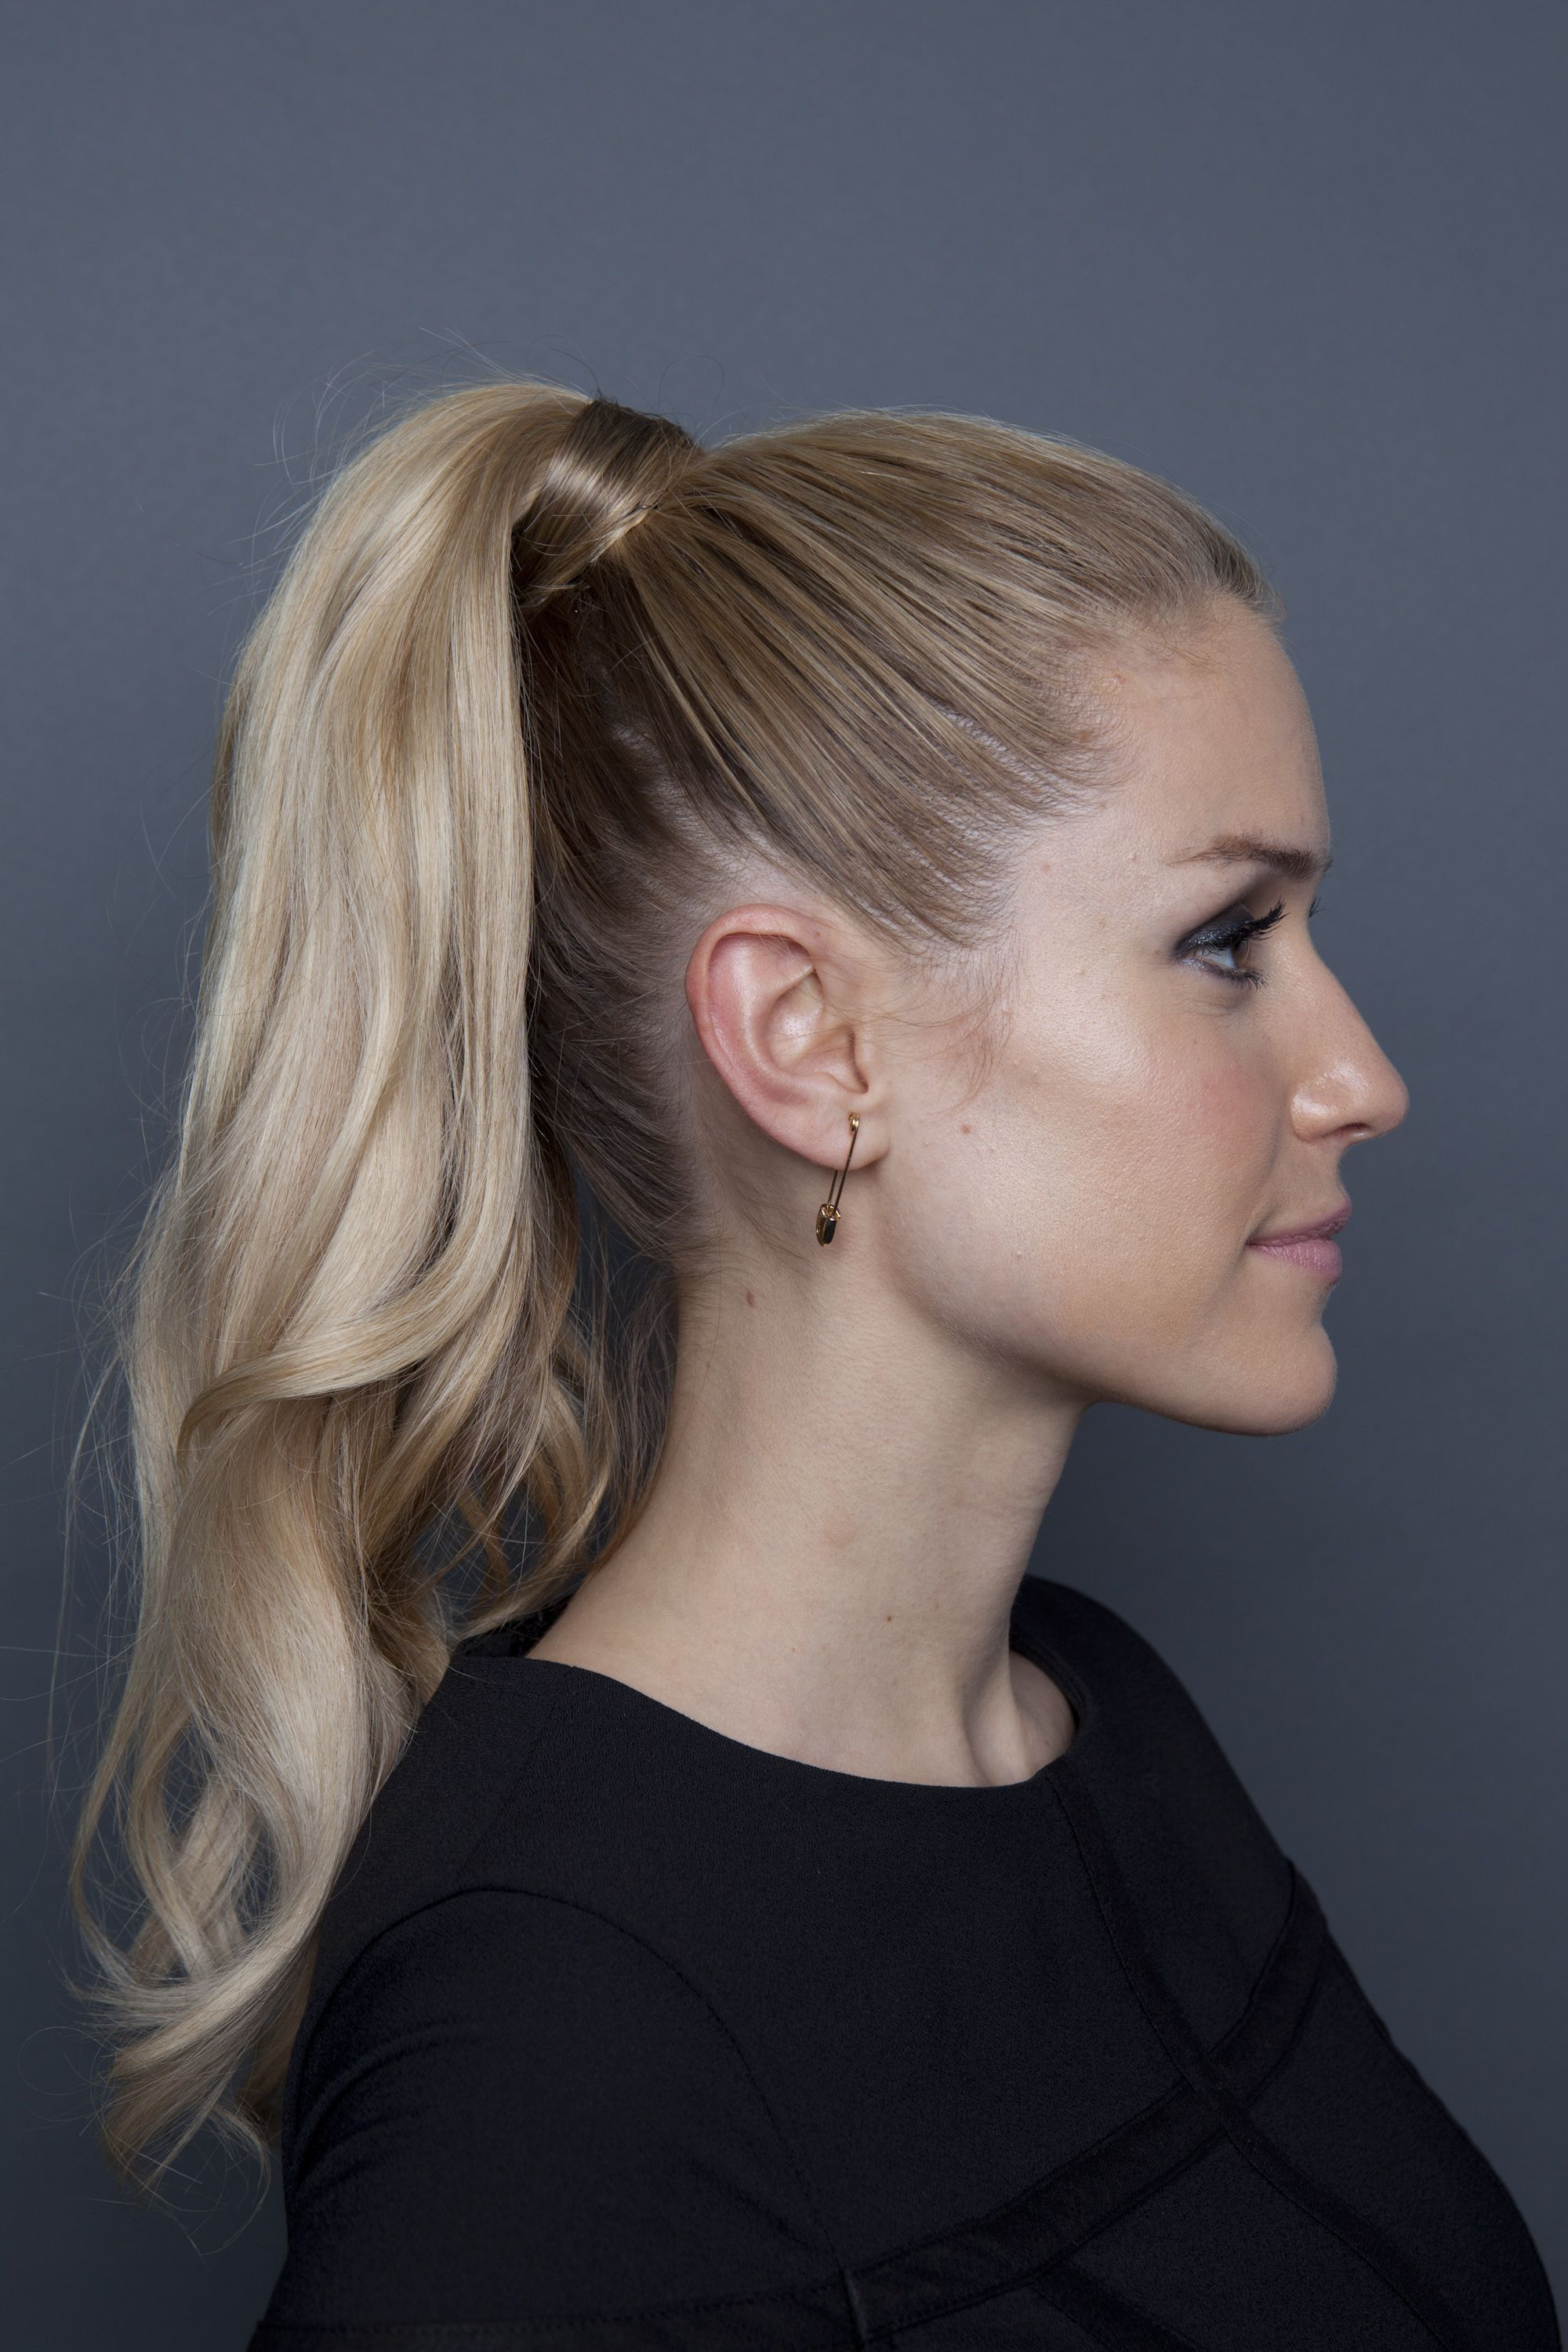 Fashionable High Looped Ponytail Hairstyles With Hair Wrap With Regard To Kristin Cavallari Ponytail (View 11 of 20)